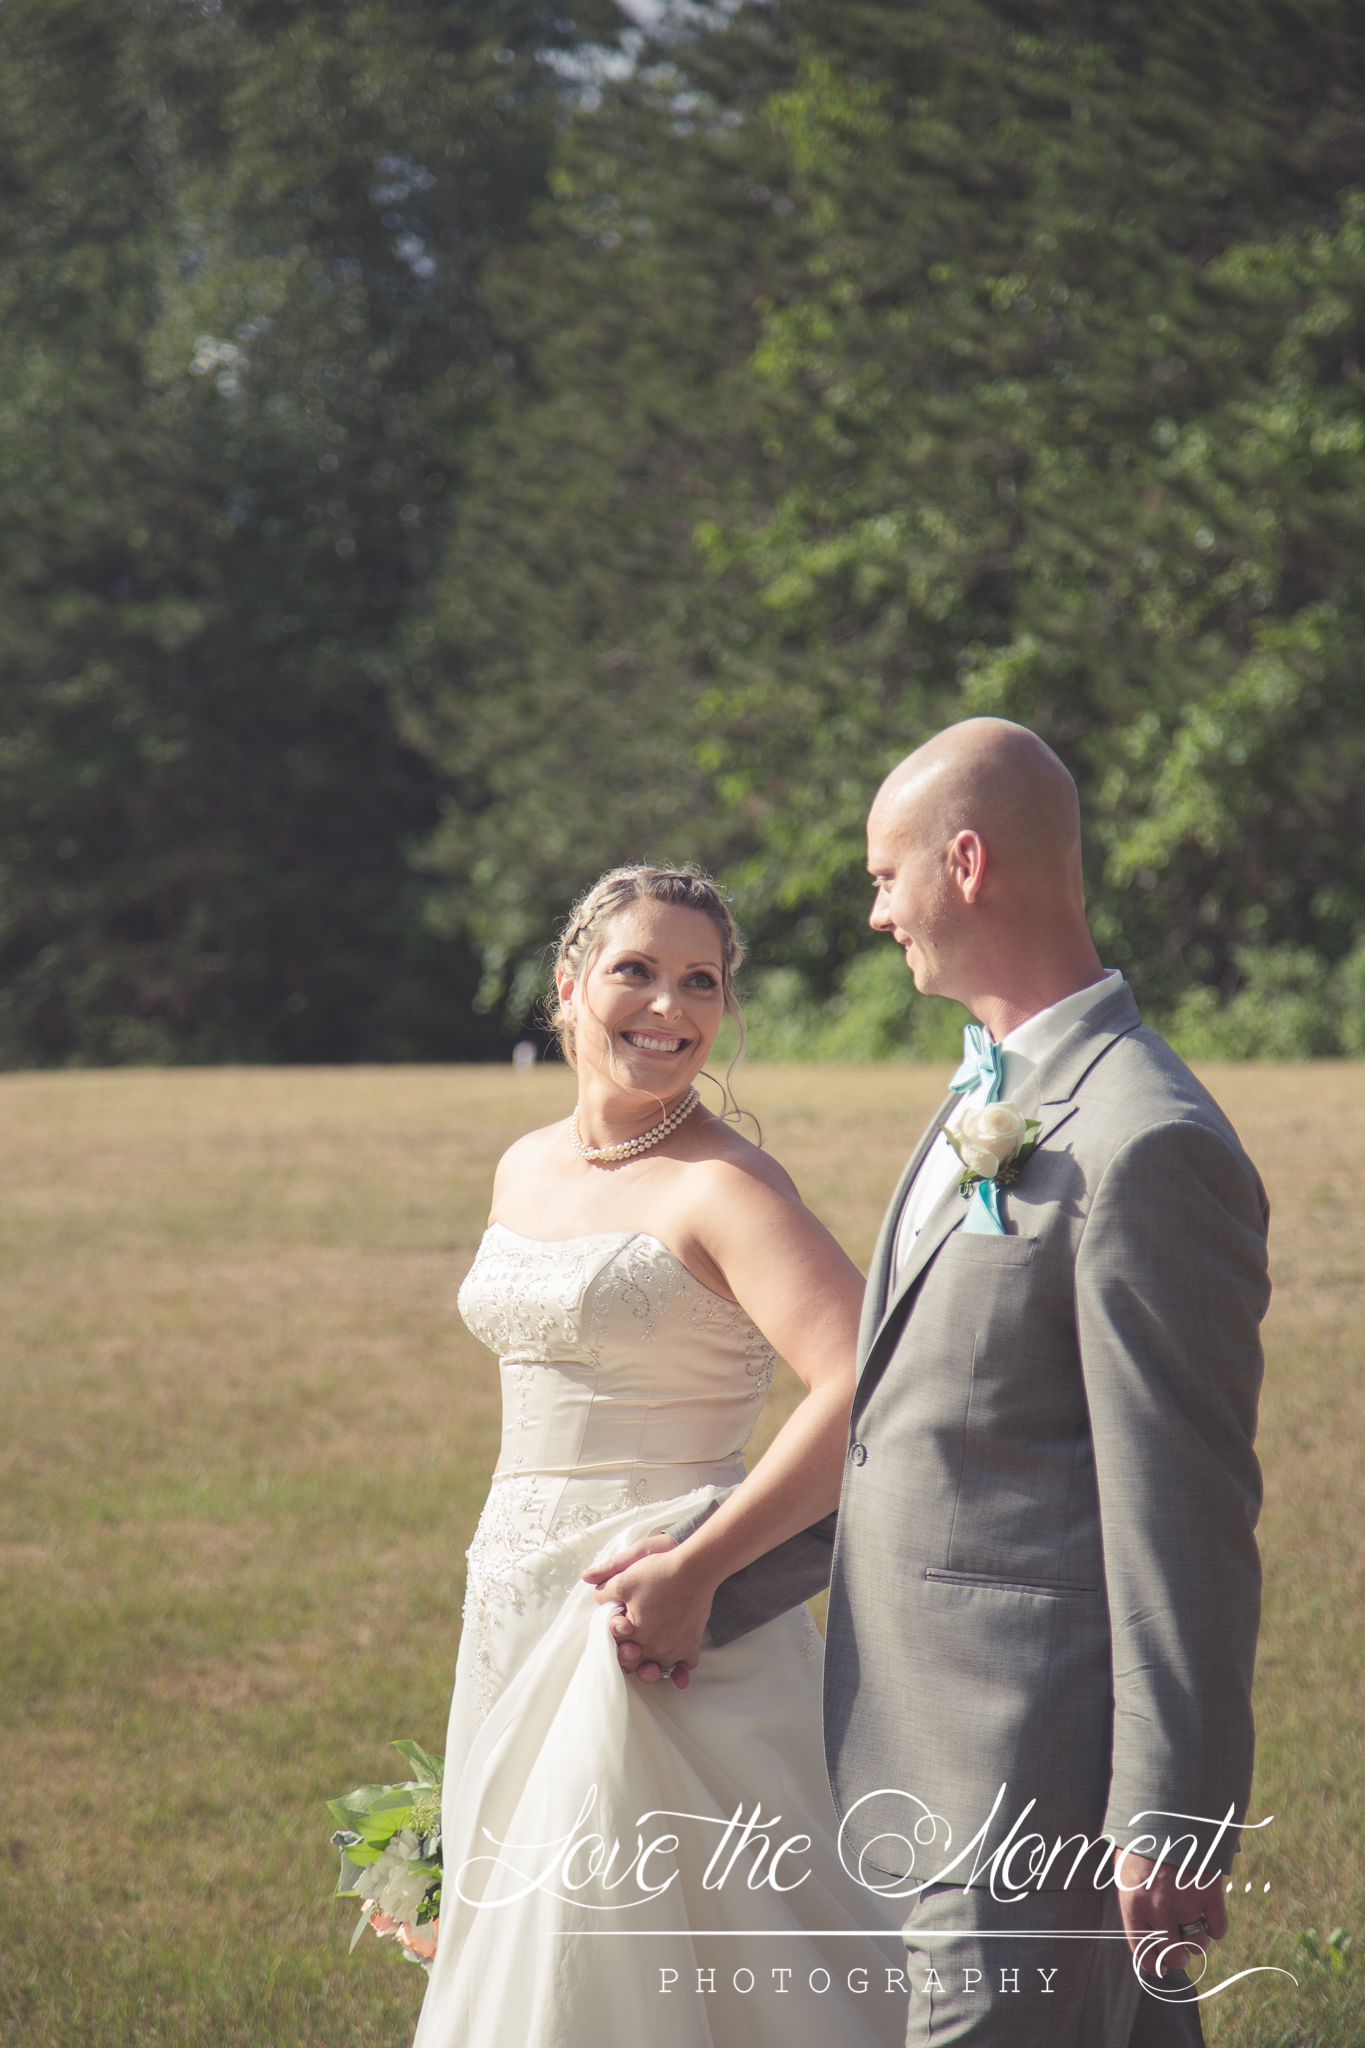 Jeff and Tina July 2016- Hidden gem Location with the Most Stunning bride